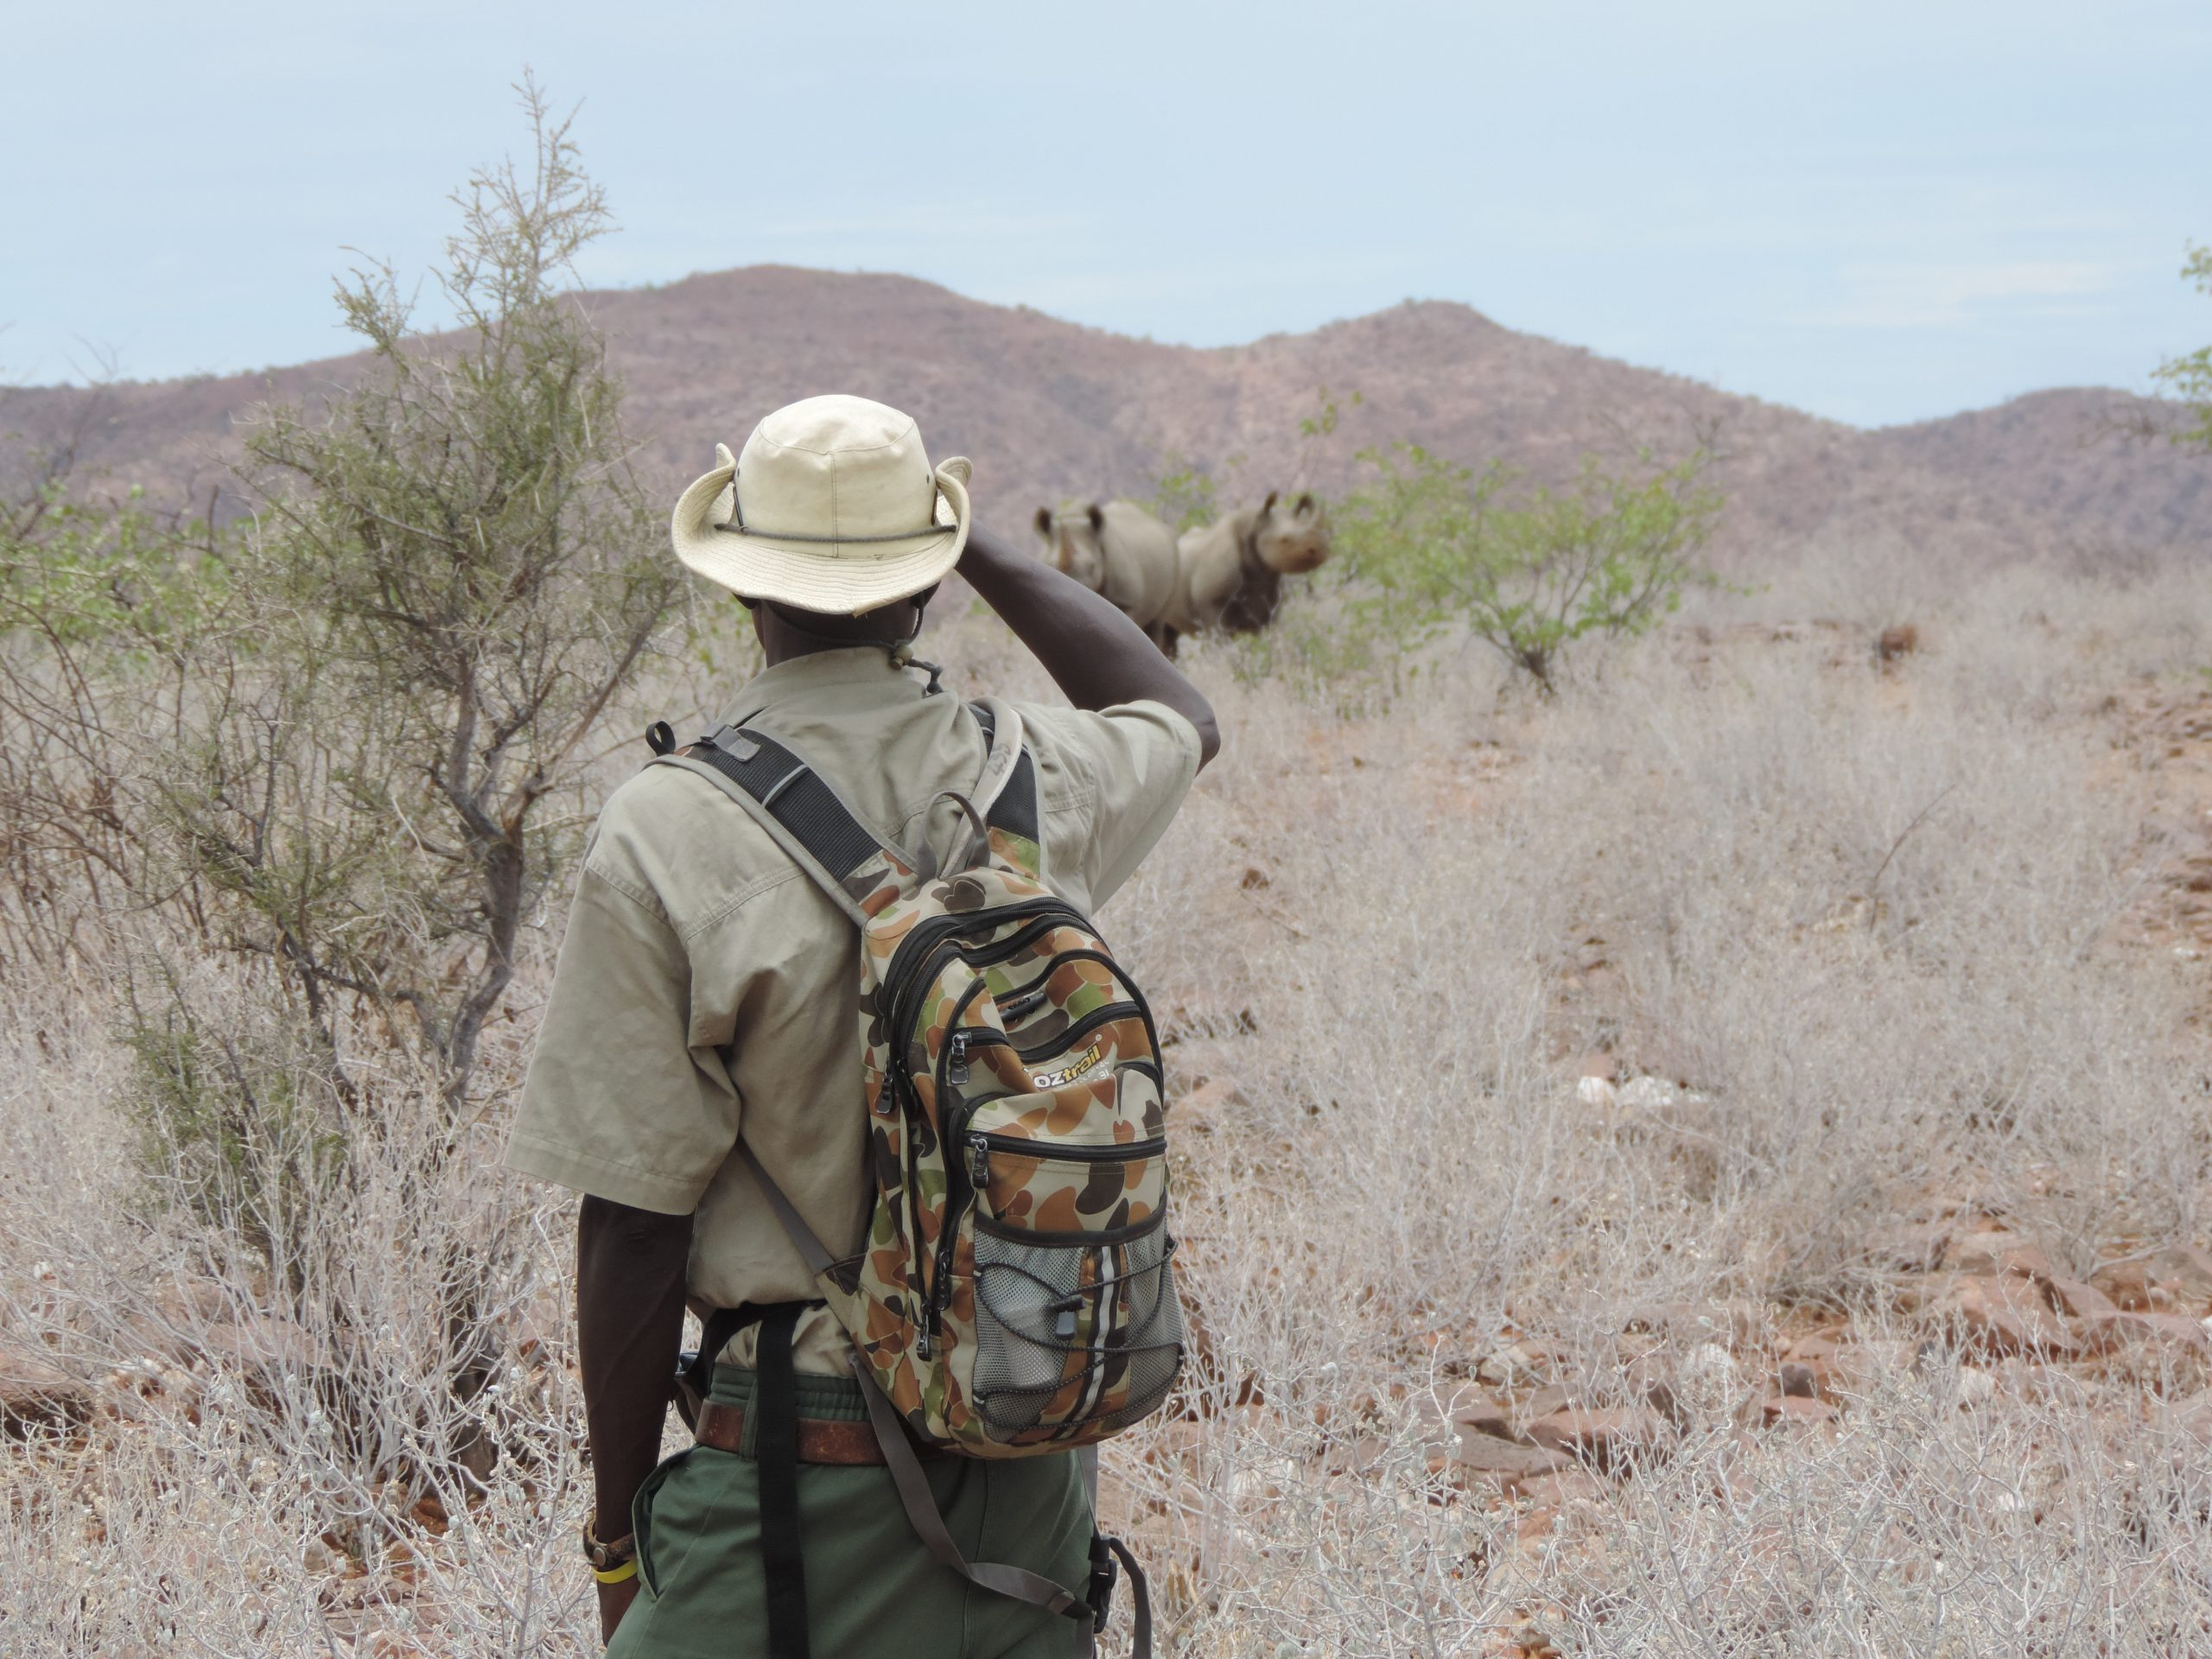 Kunene Region – Save the Rhino Trust